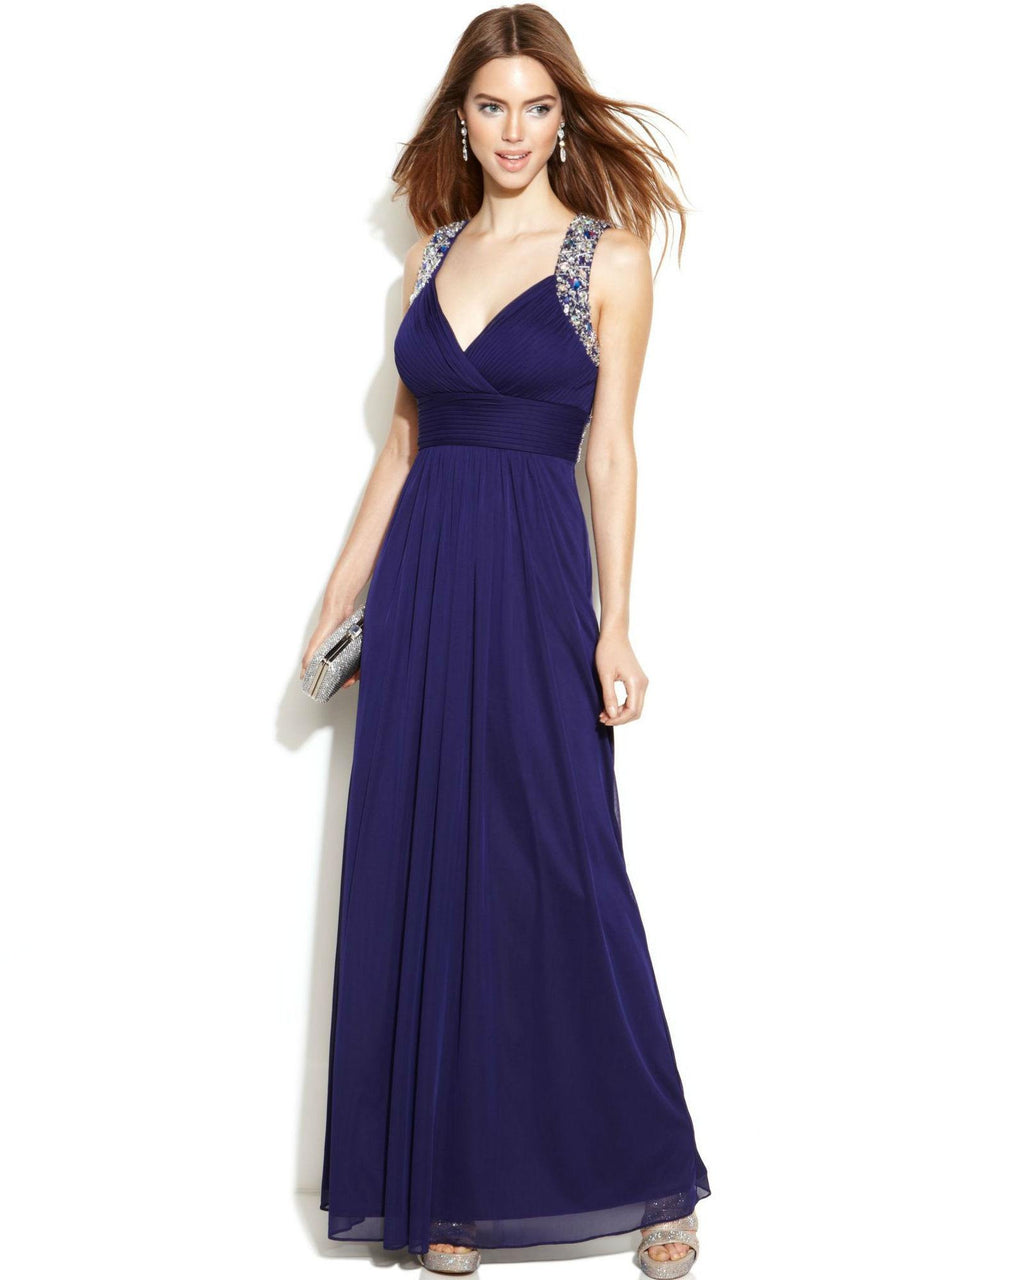 Xscape Sleeveless Jewel-Trim Racerback Gown-XSCAPE EVENINGS-Fashionbarn shop